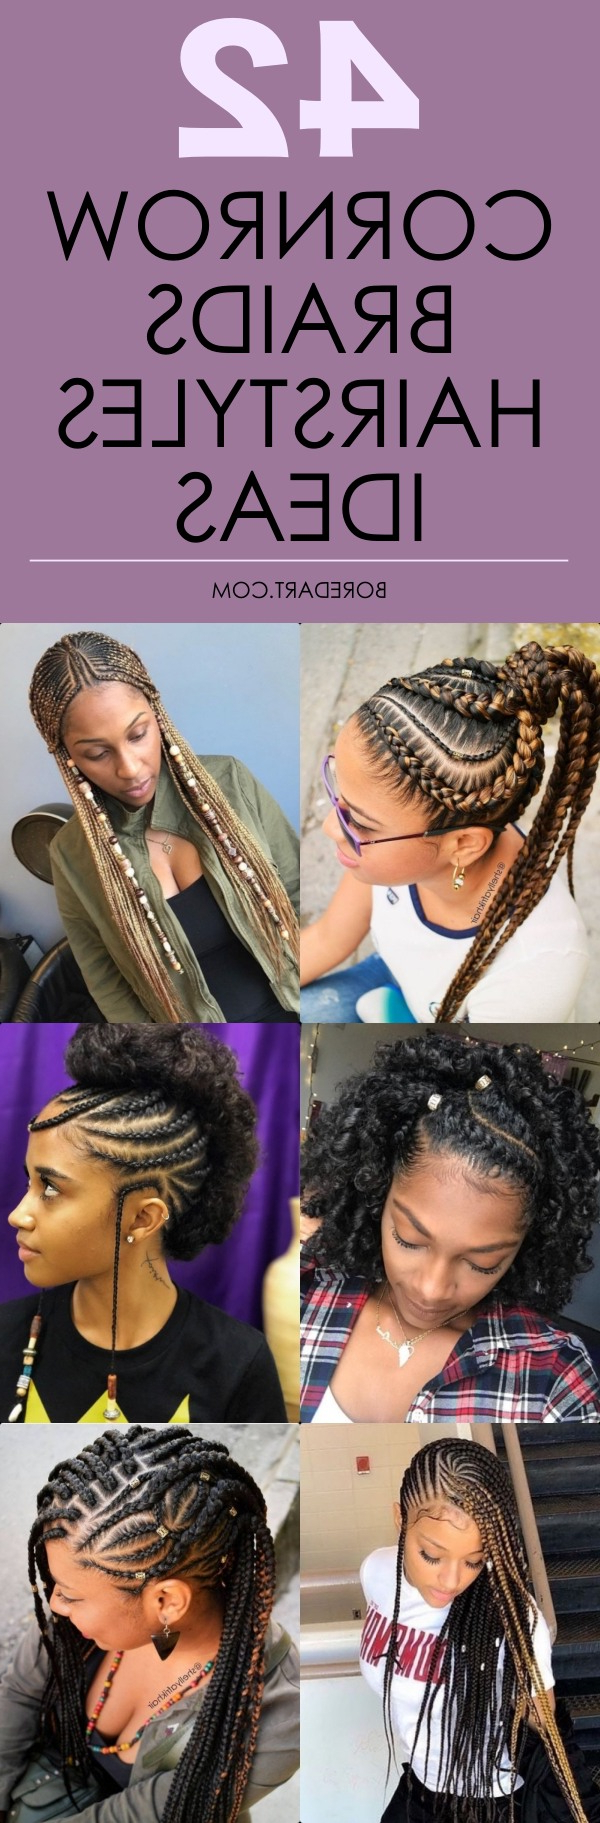 42 Catchy Cornrow Braids Hairstyles Ideas To Try In 2019 With Regard To 2020 Cornrow Fishtail Side Braided Hairstyles (View 3 of 20)